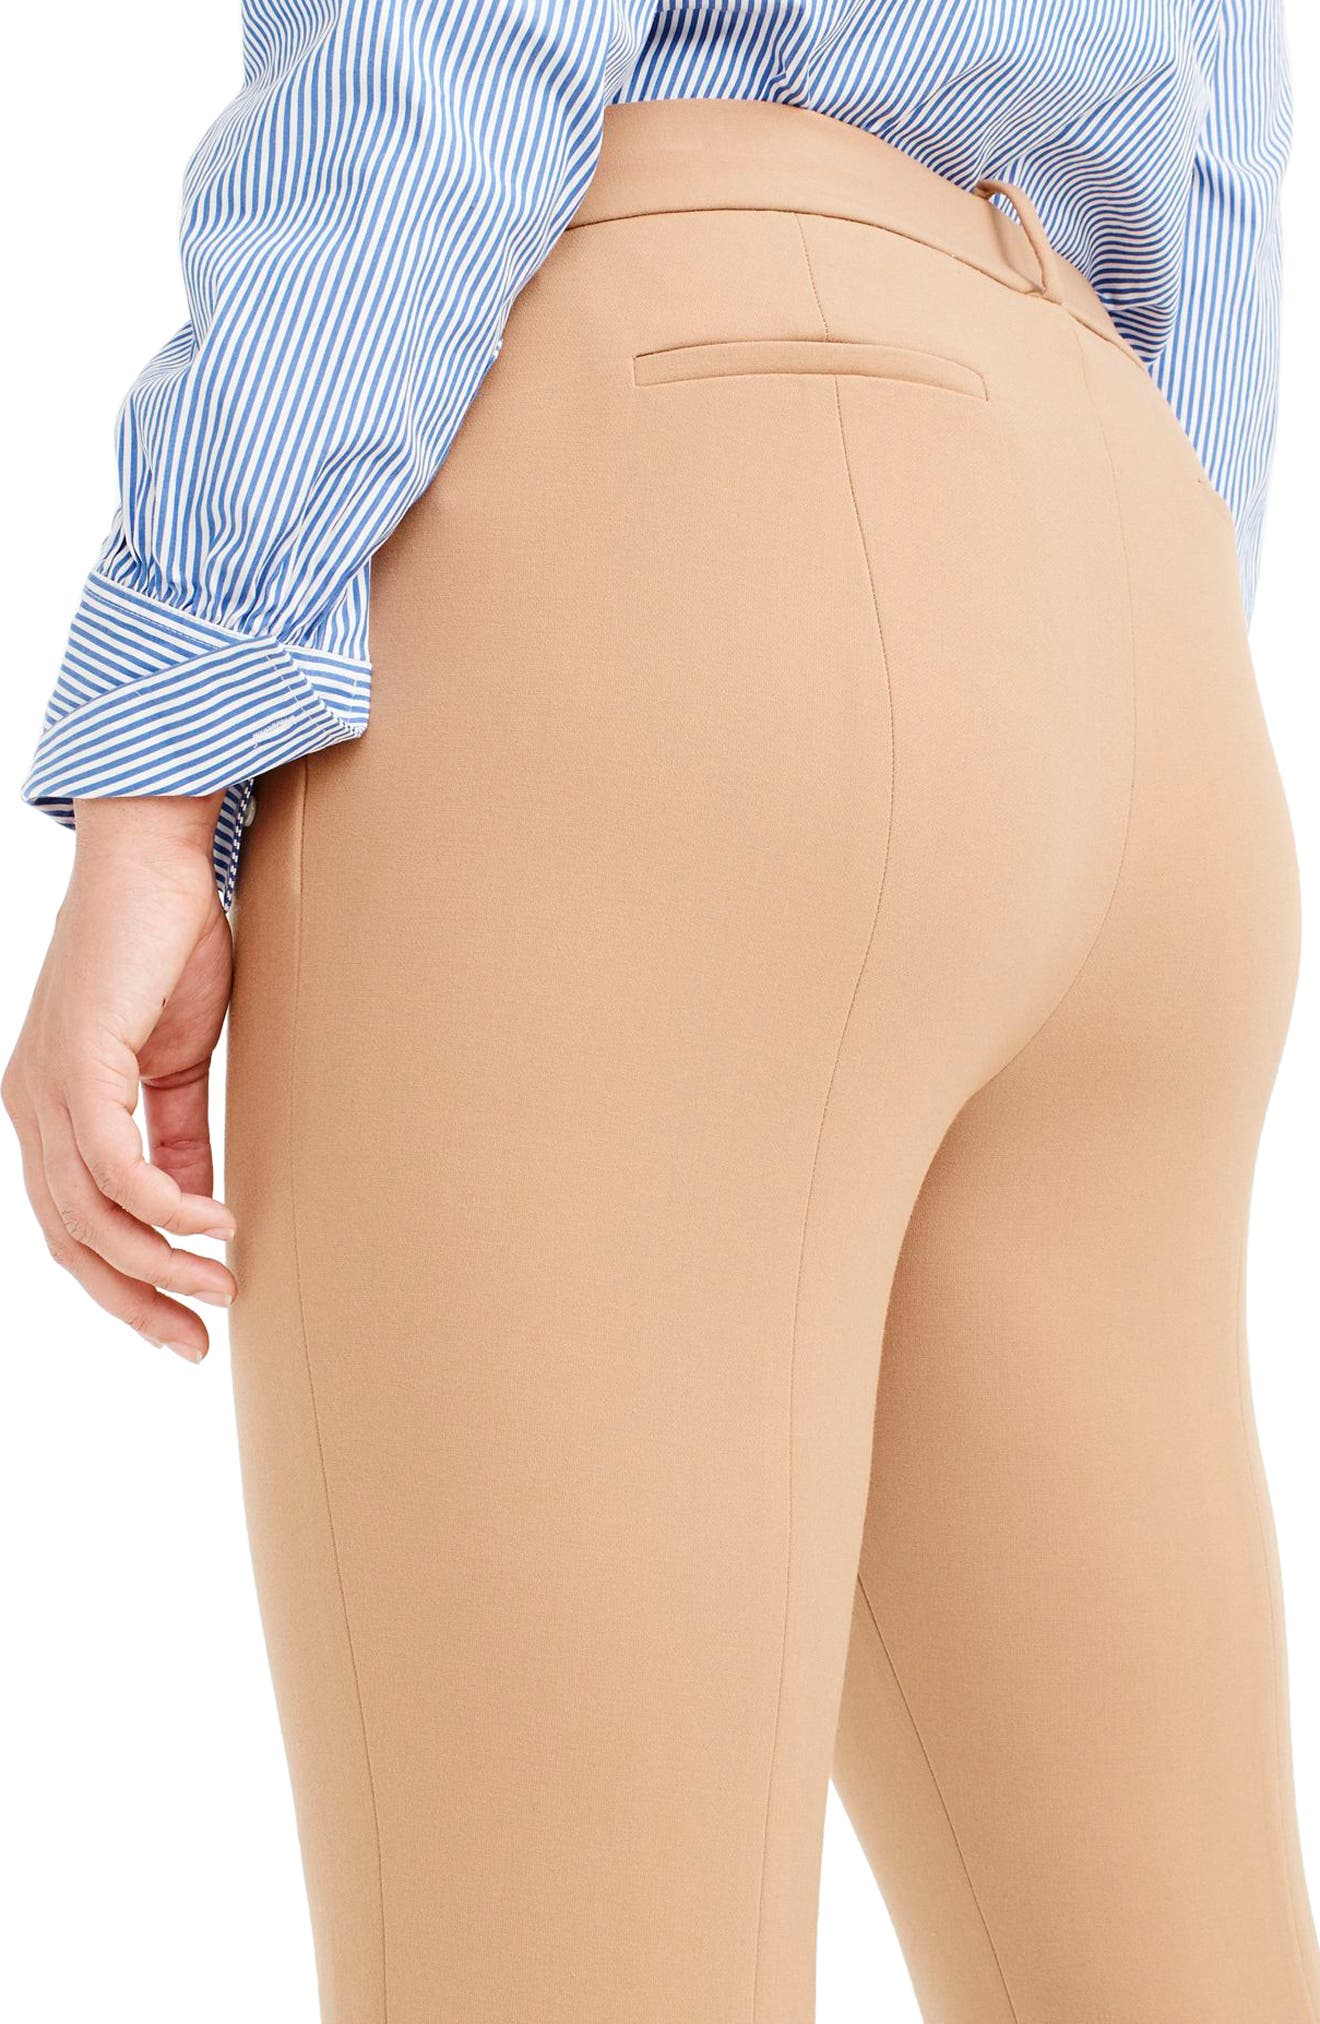 Cameron Four Season Crop Pants,                             Alternate thumbnail 9, color,                             HEATHER SADDLE